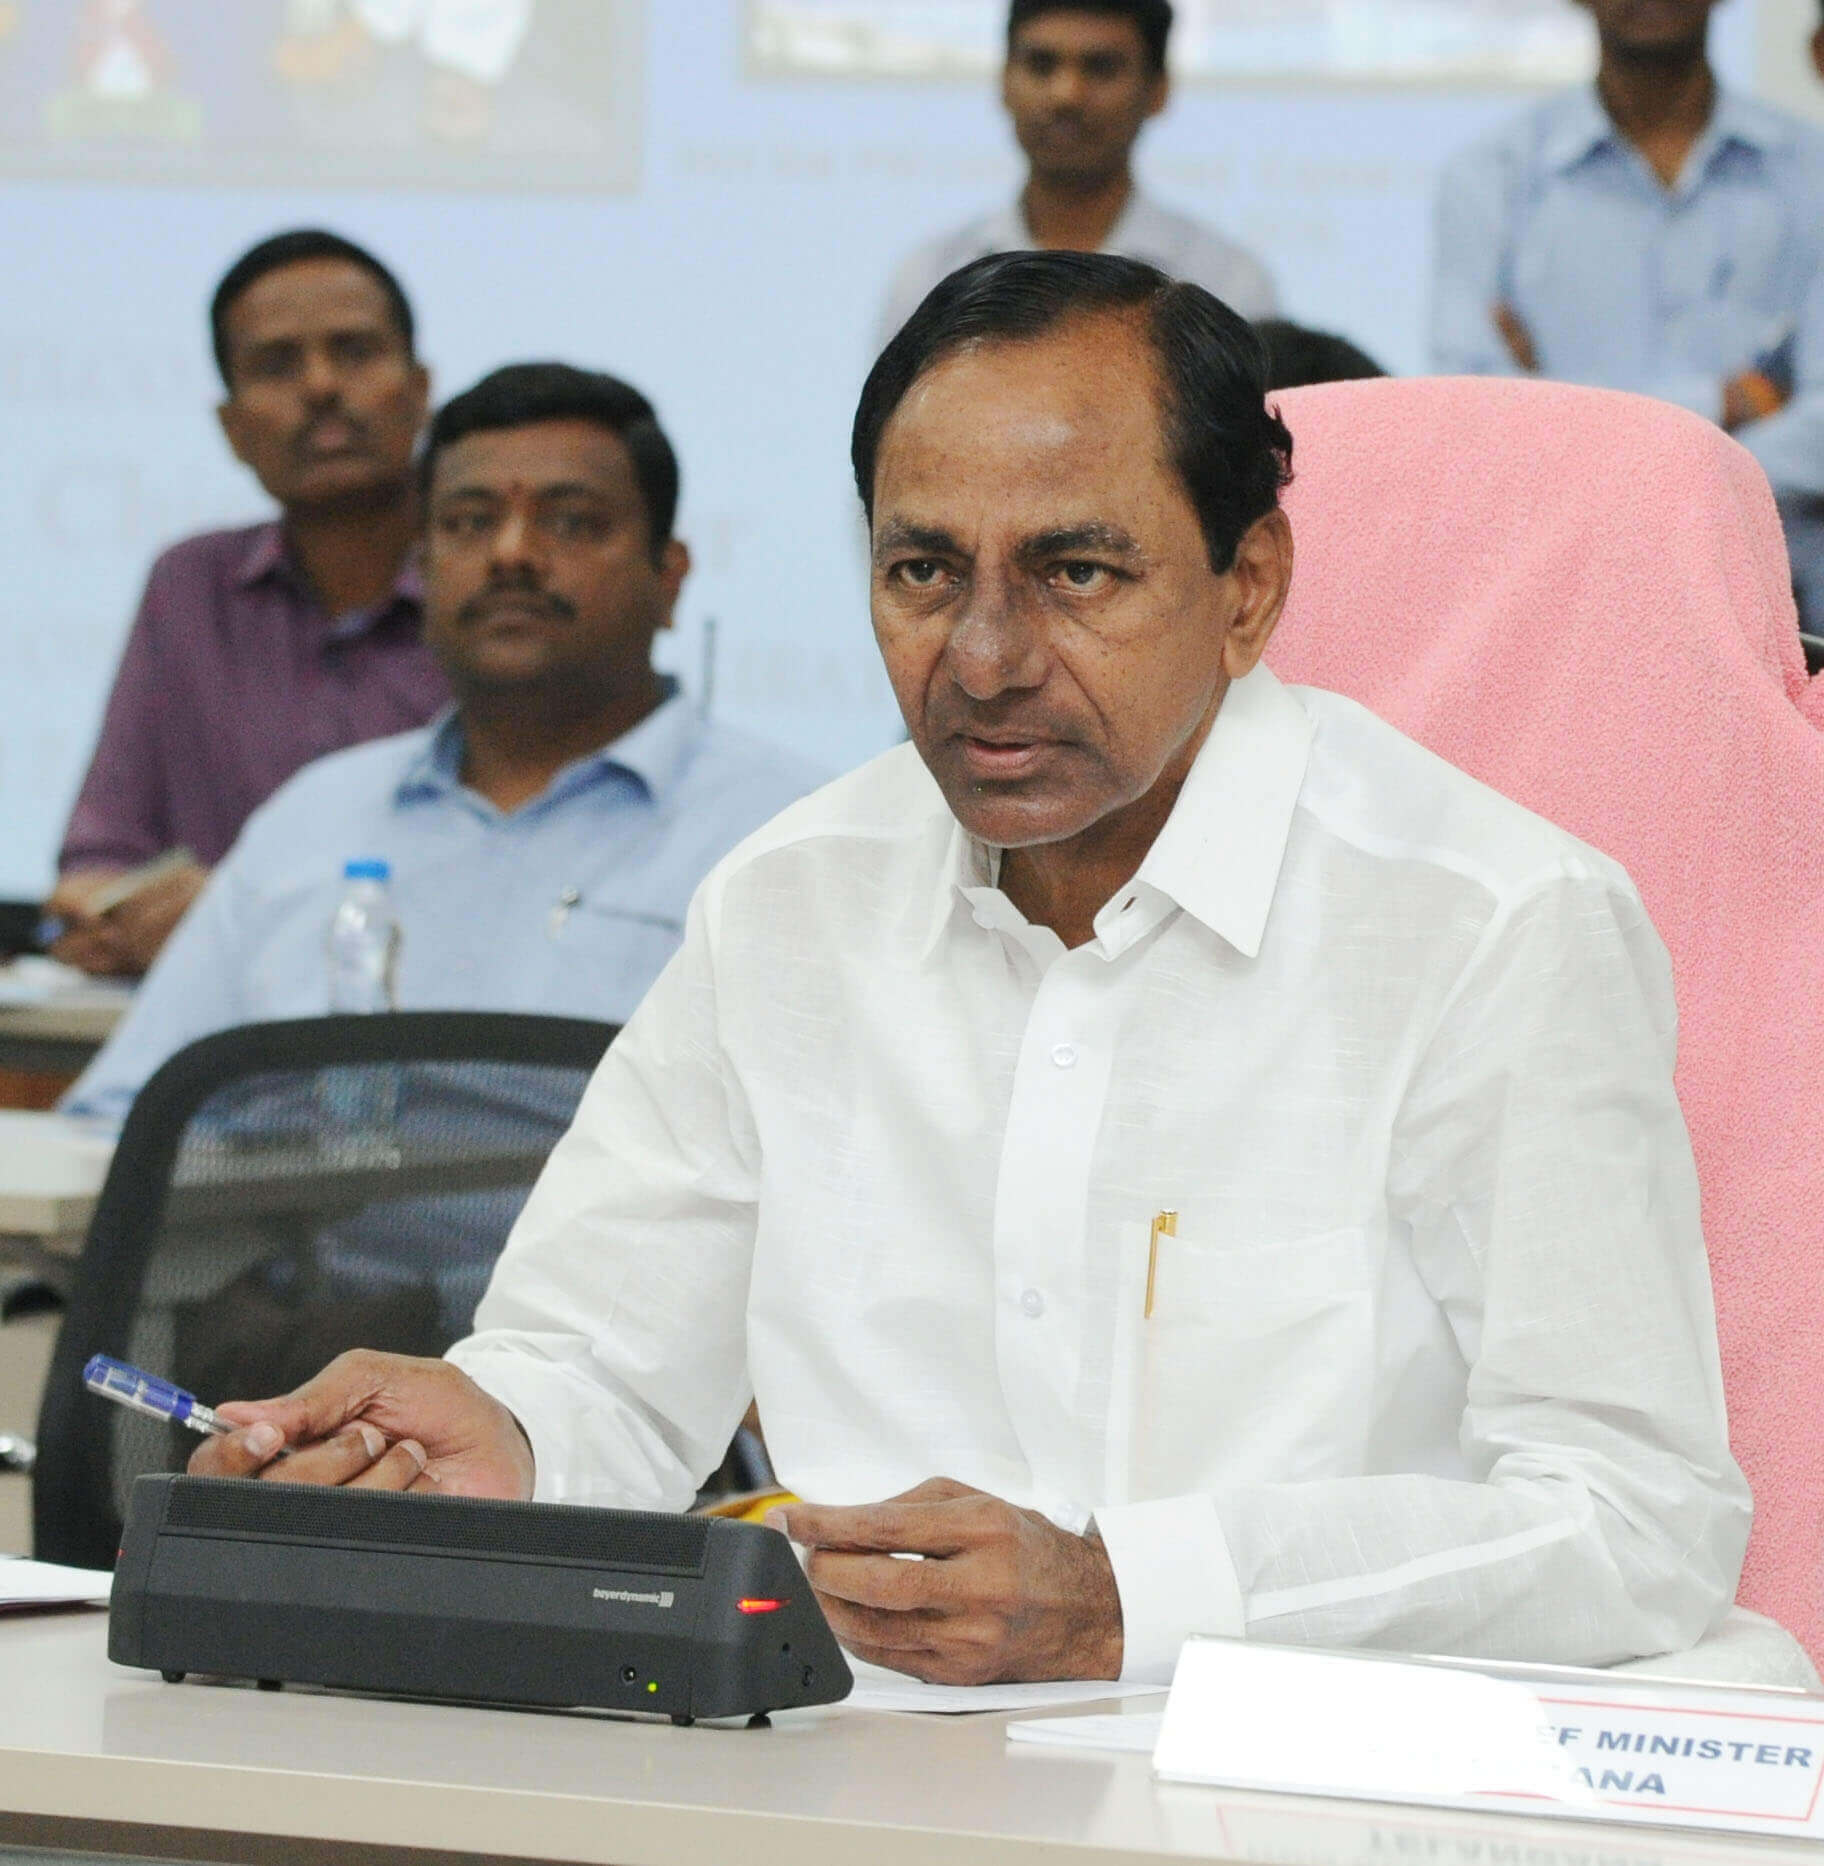 Telangana Chief Minister K.Chandrasekhar Rao review meeting on Mission Bhagiratha at Pragathi Bhavan on 24.1.2017.